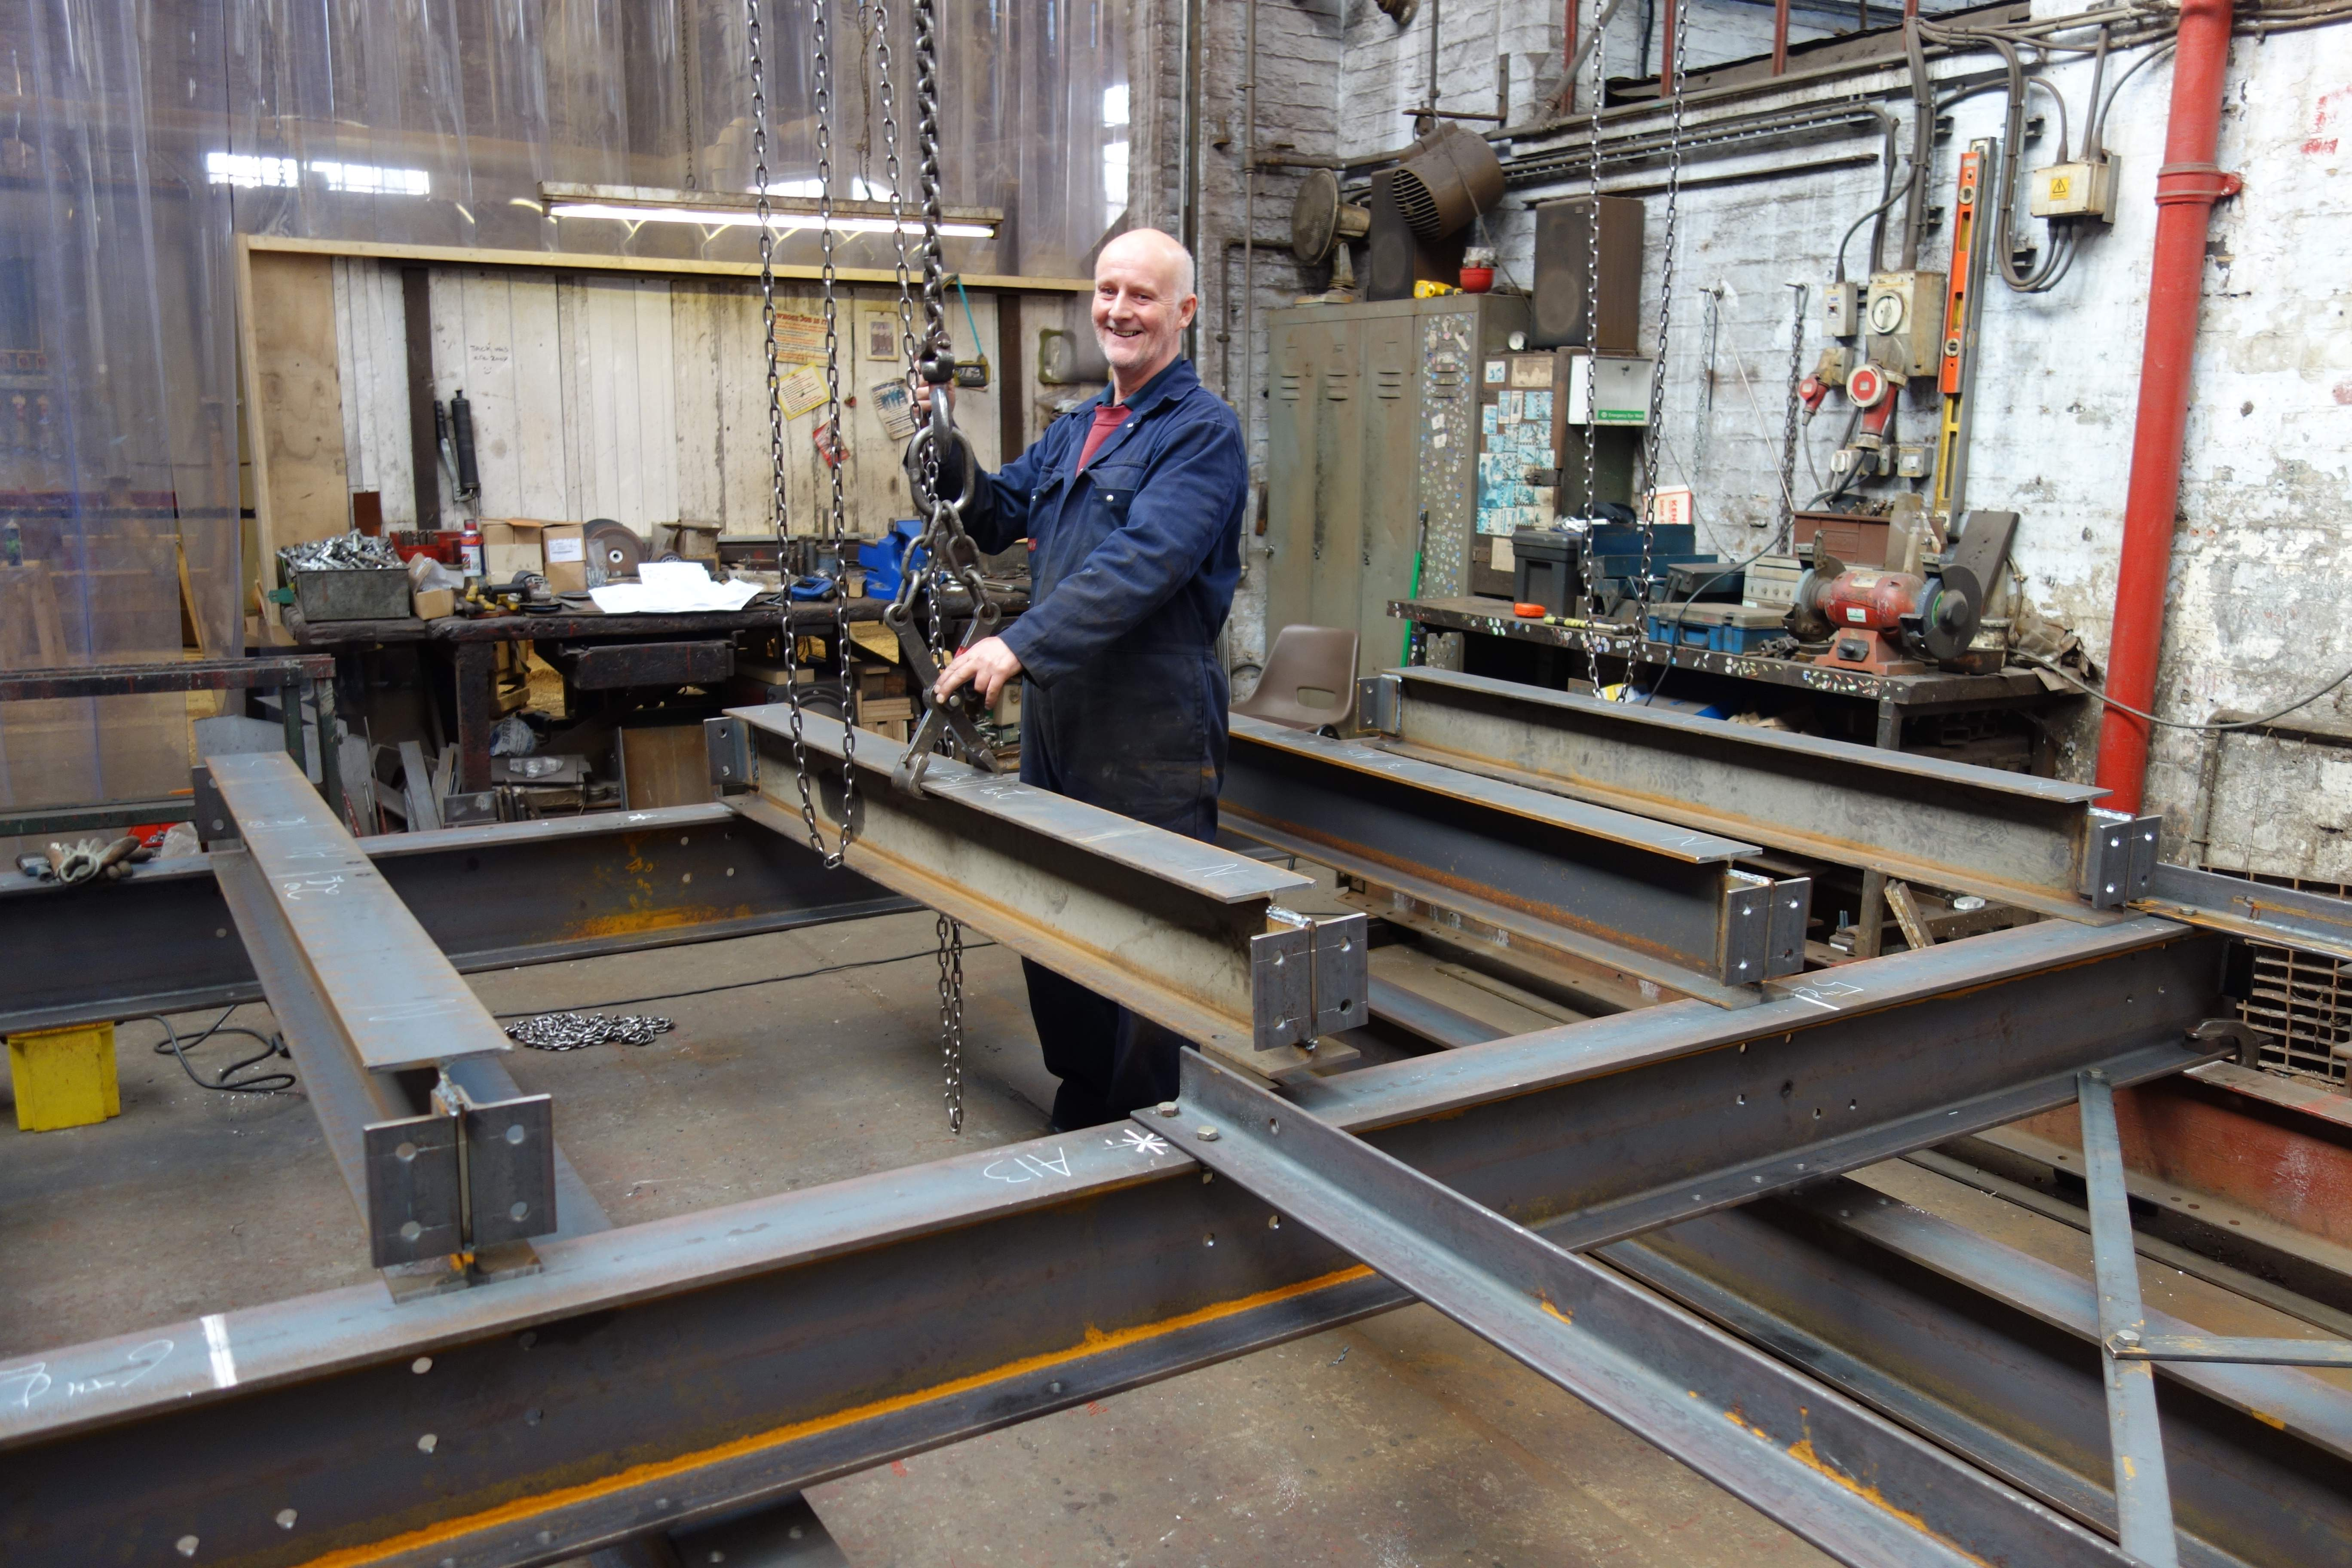 The new bell frame is being manufactured.